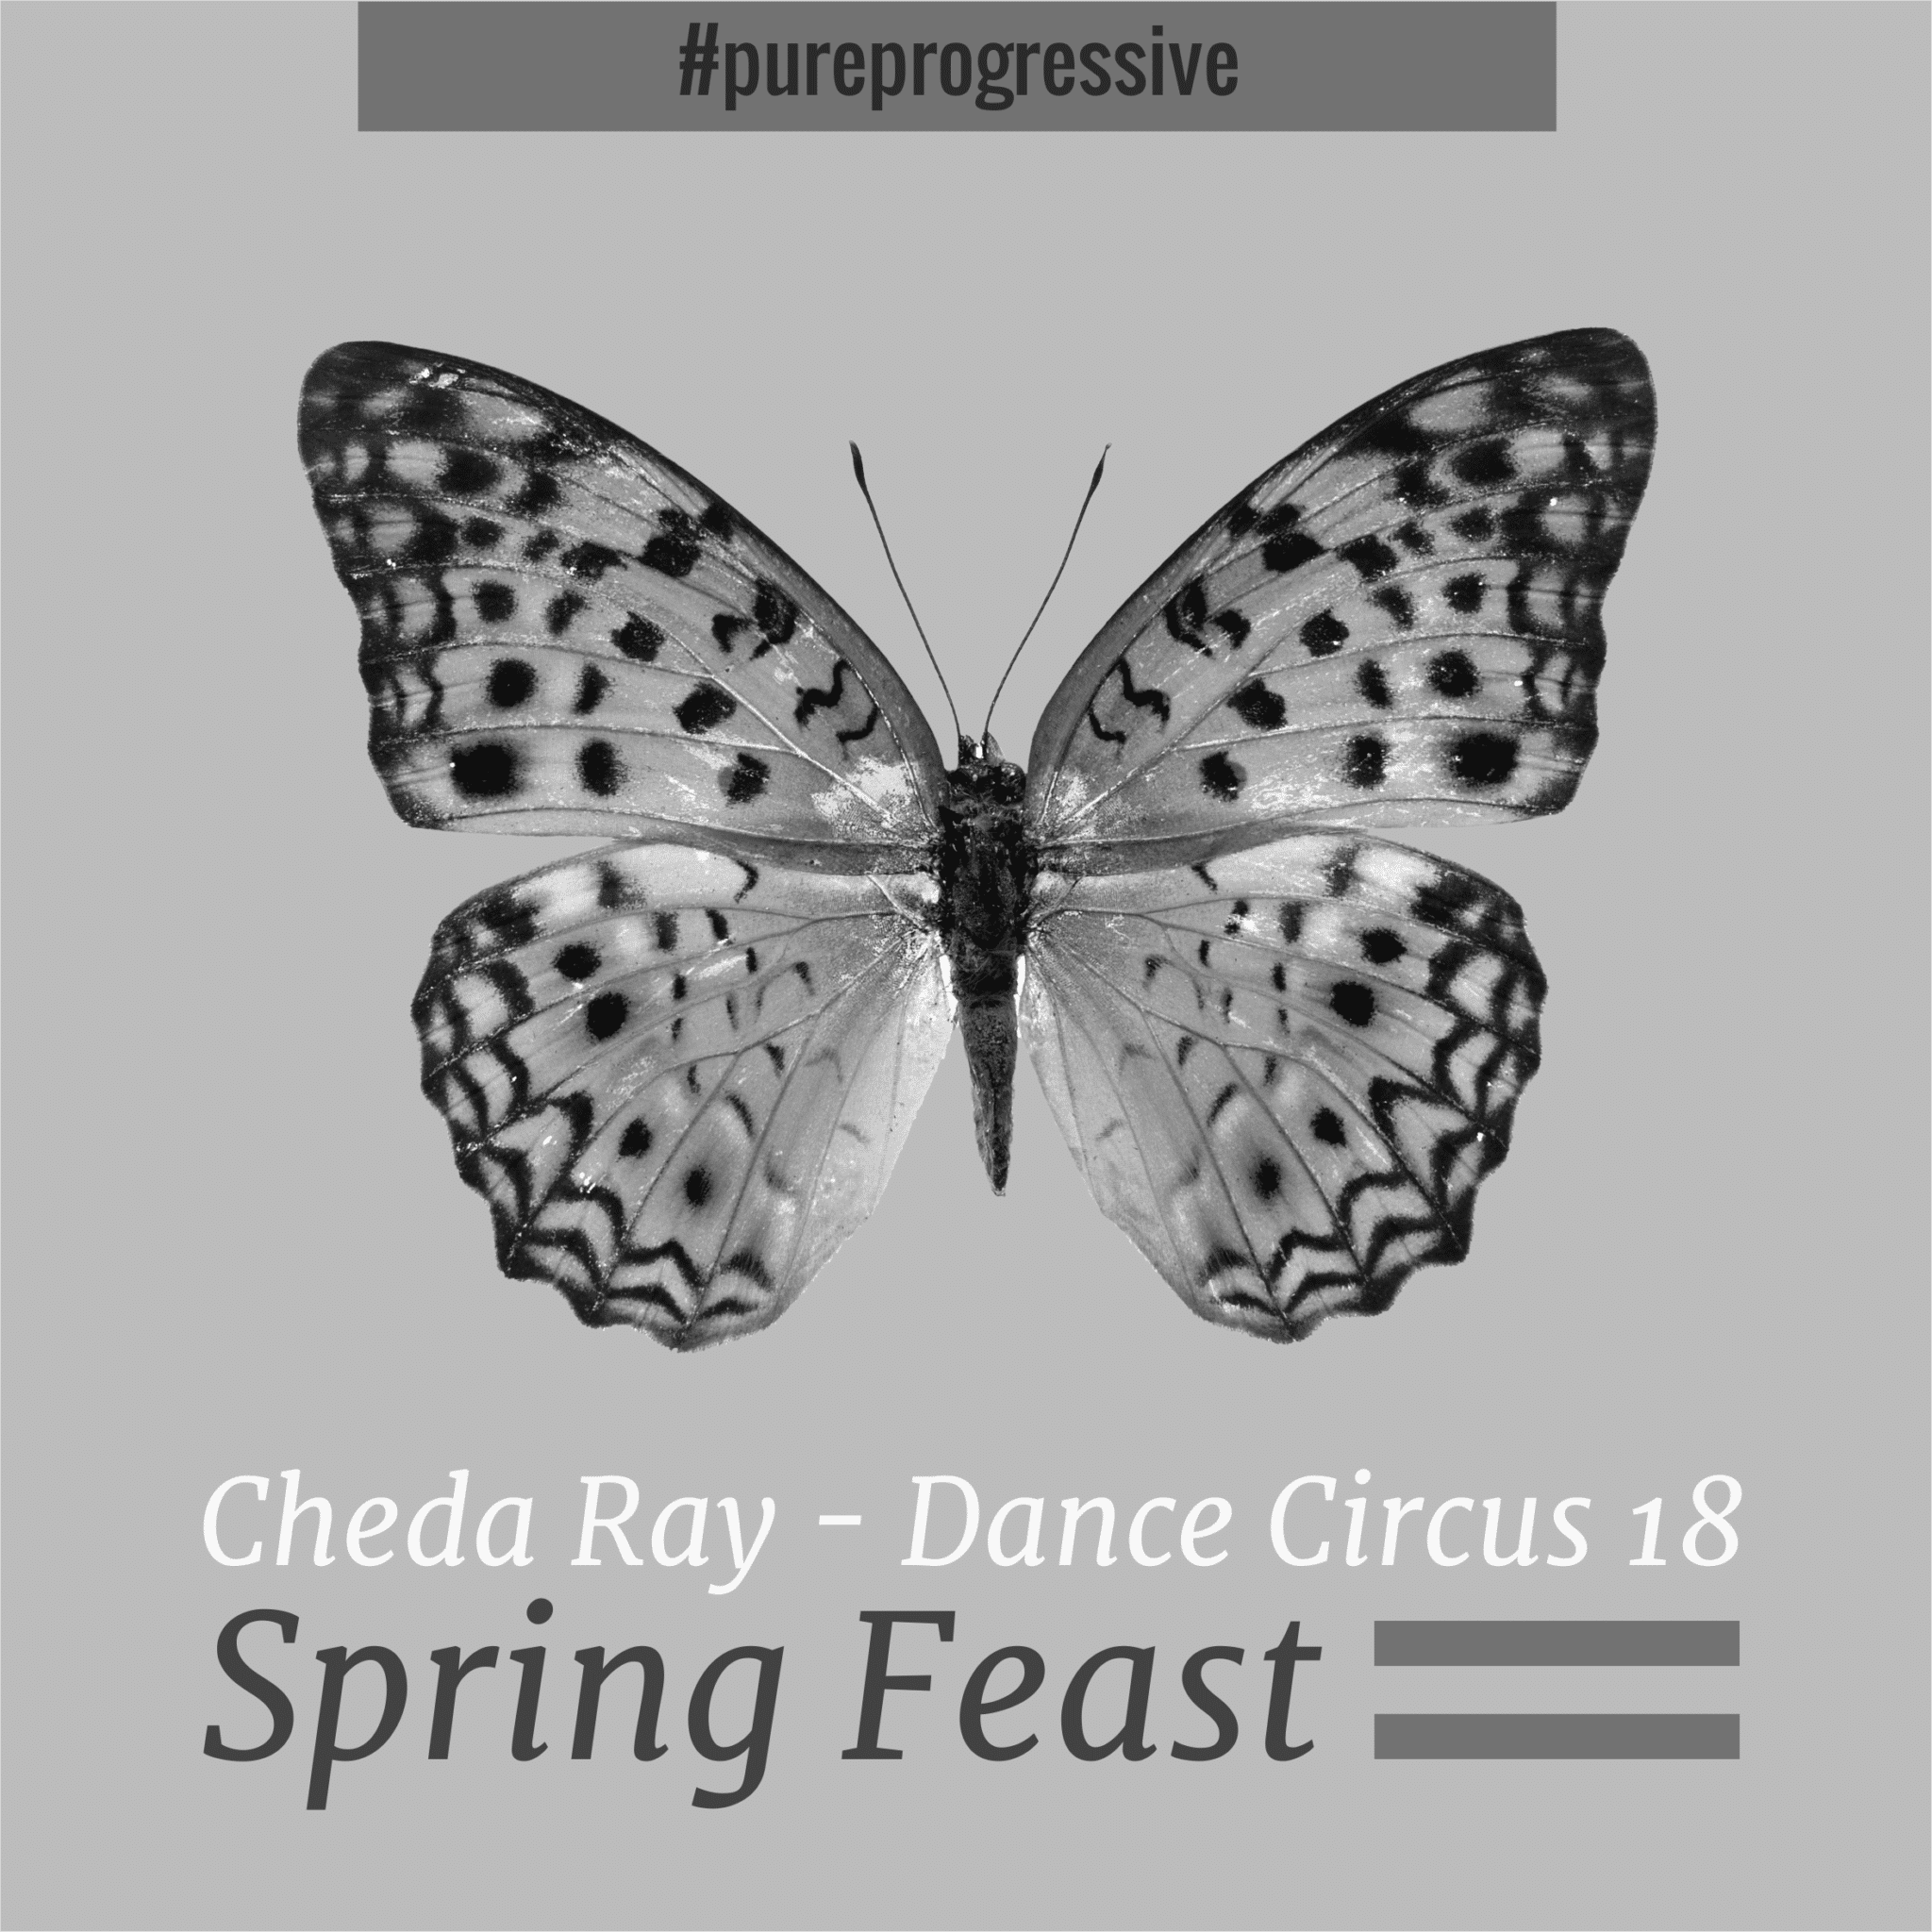 Dance Circus 18 - Spring Feast